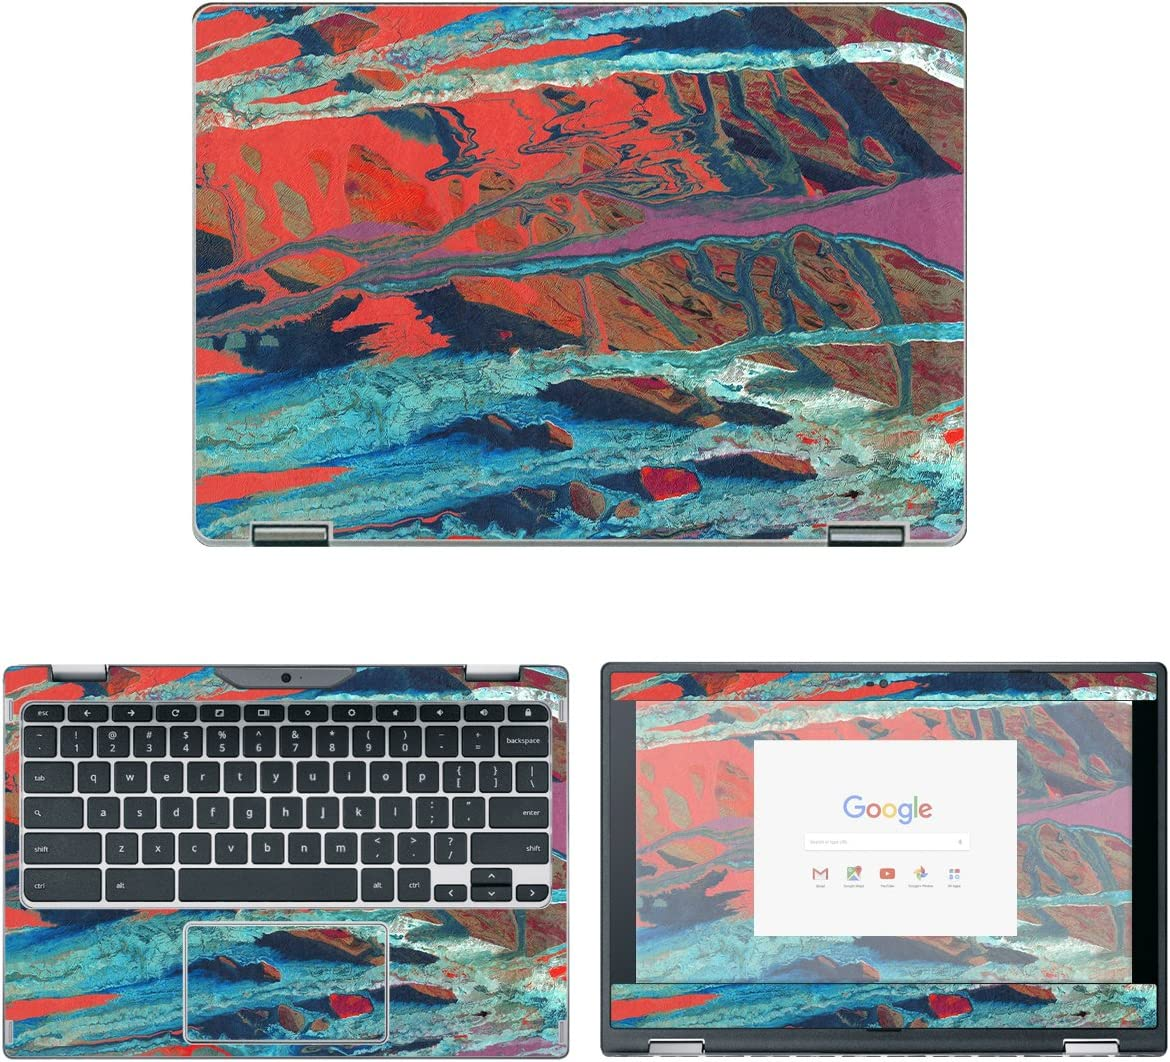 decalrus - Protective Decal Watercolor Skin Sticker for Acer ChromeBook Spin 11 CP311-1HN (11.6